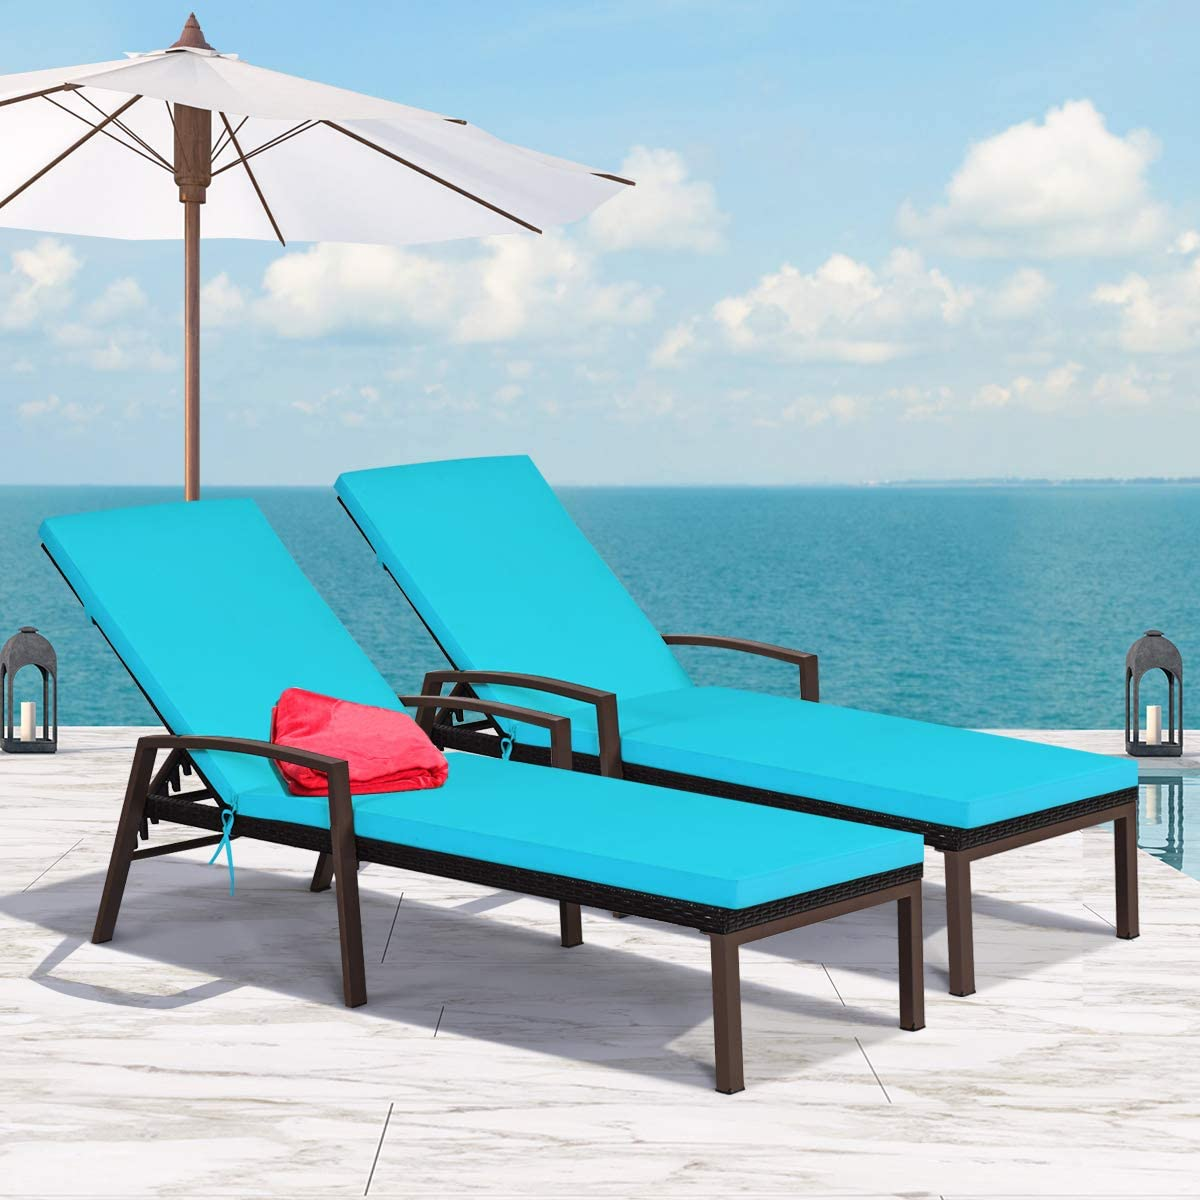 Tangkula 2 PCS Patio Rattan Chaise Lounge Chair, Outdoor Reclining Chaise with Cushion and Armrest, Wicker Sun Lounger with Adjustable Backrest for Garden, Balcony, Poolside Turquoise